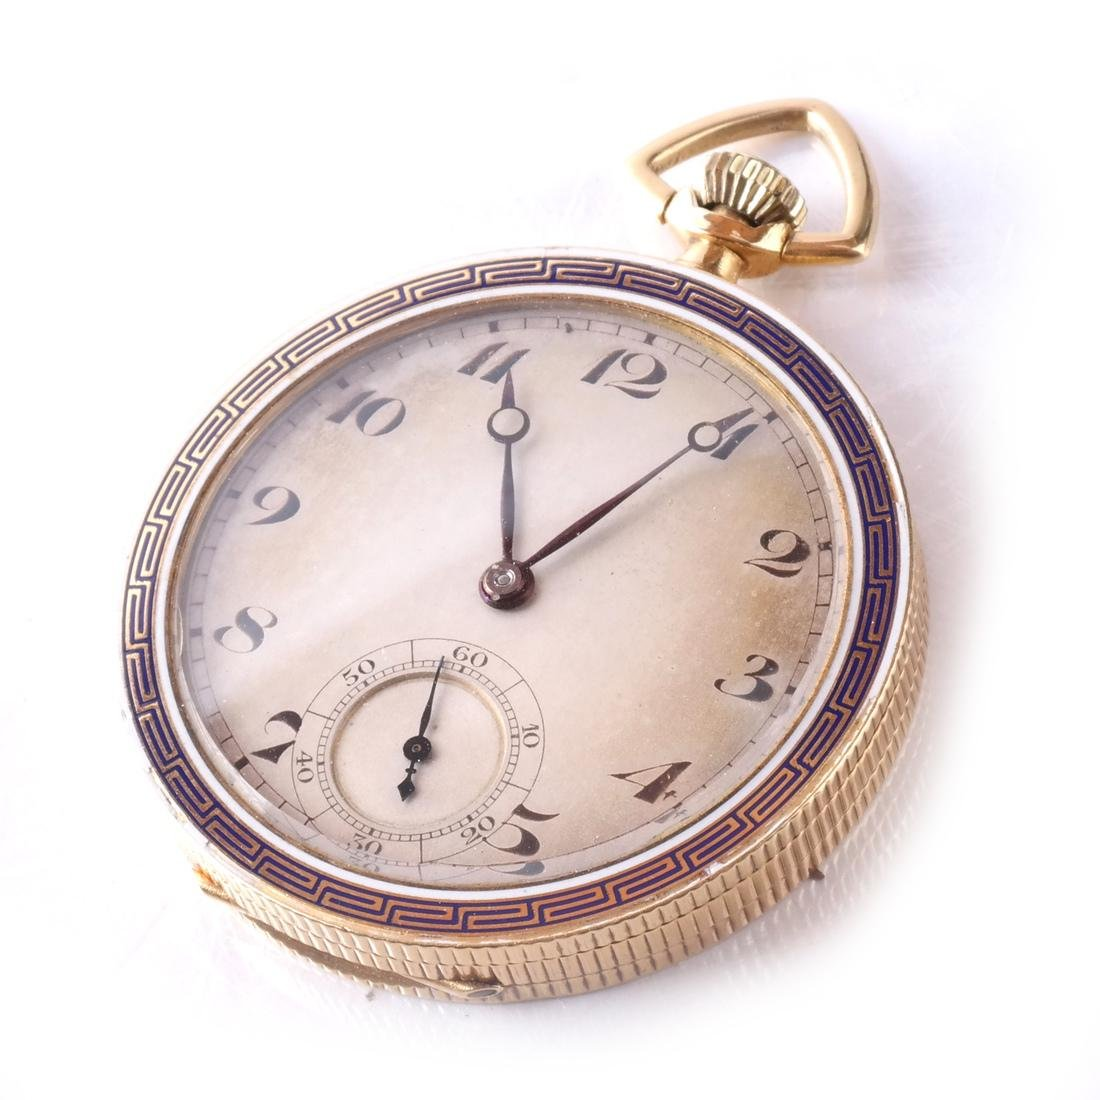 18k Pocket Watch, Open-Face